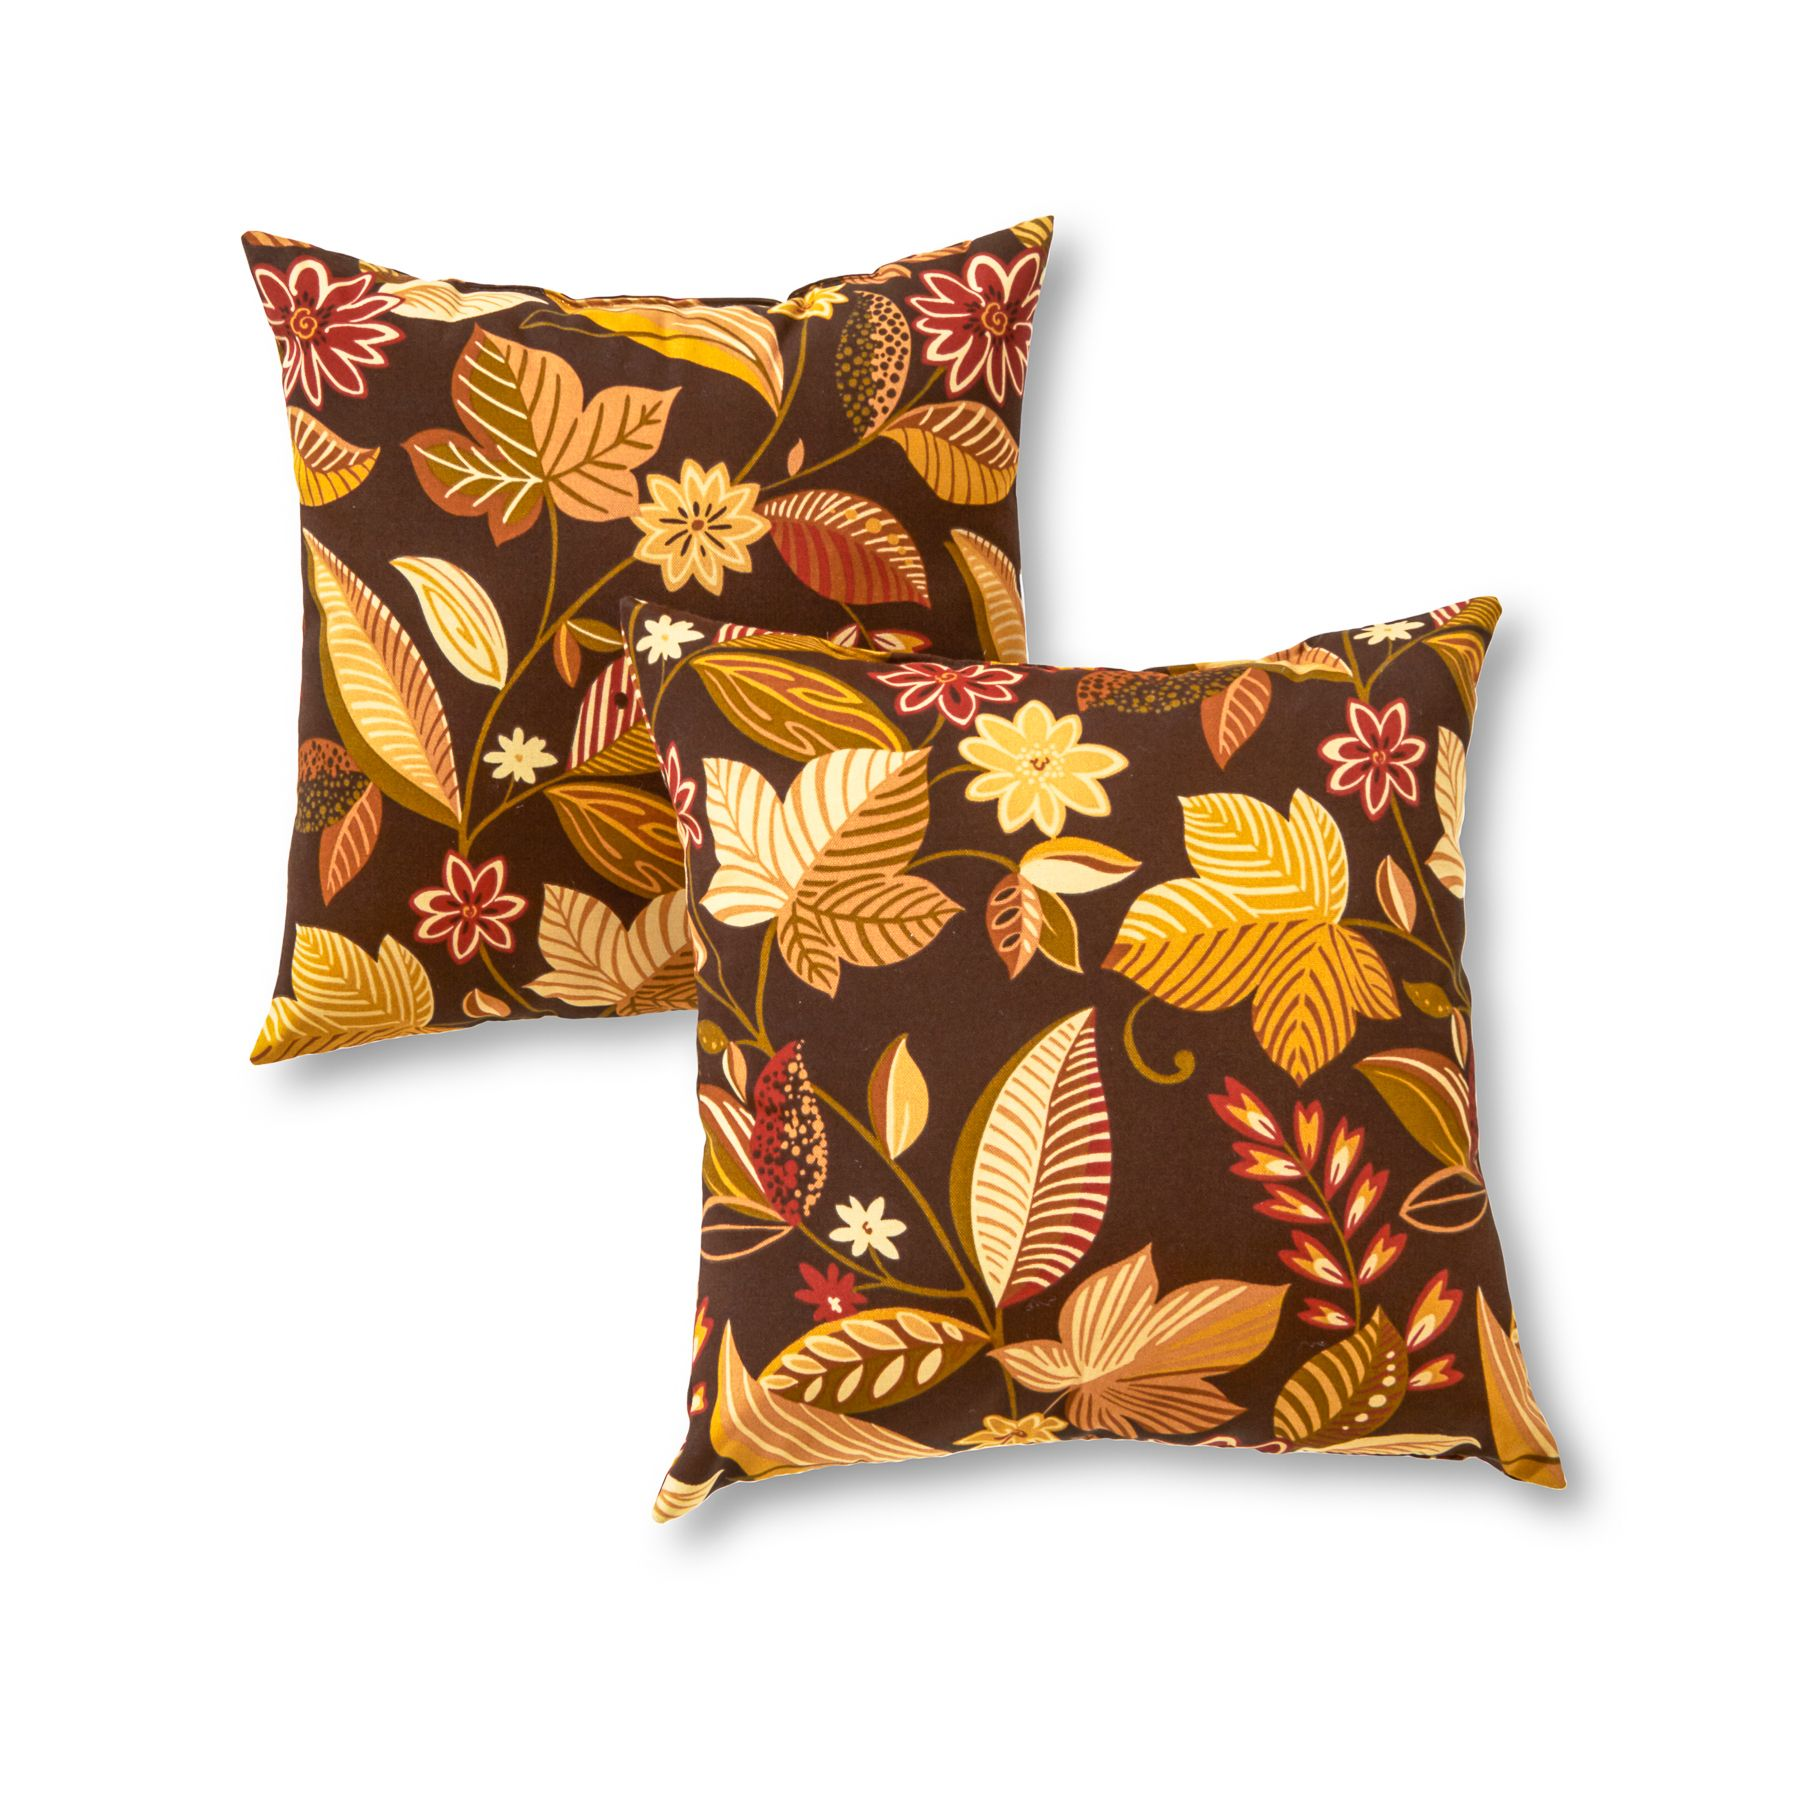 Greendale Home Fashions 17 X 17 Outdoor Accent Pillows Set Of